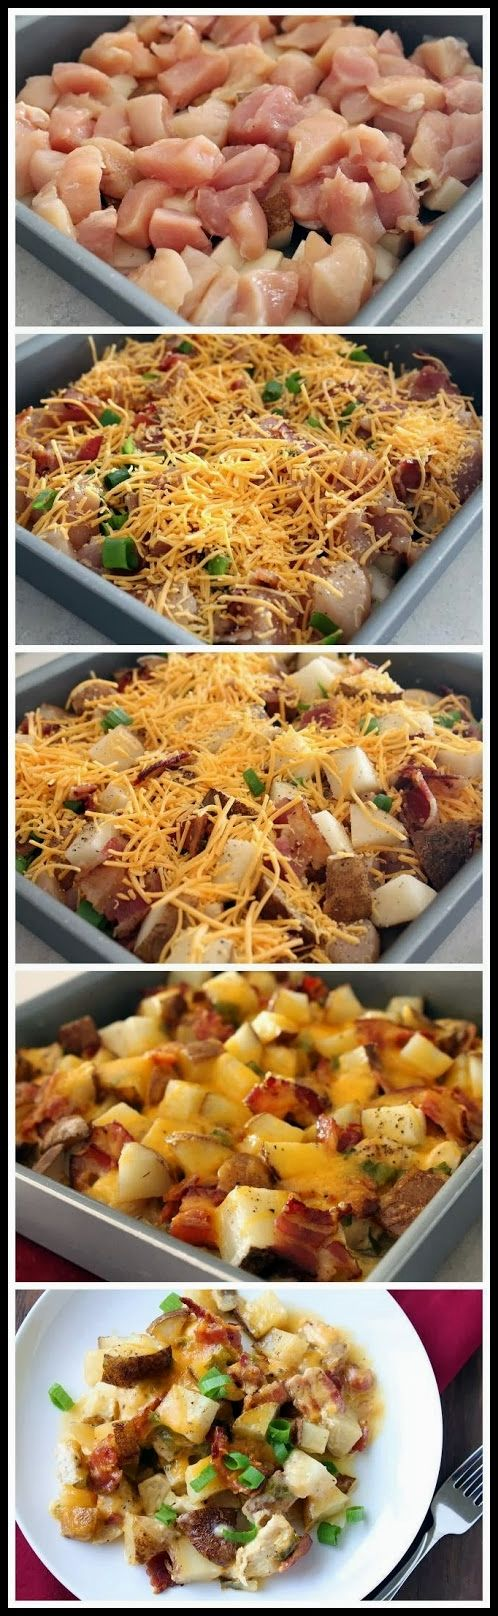 Loaded baked potato chicken casserole! This was delicious and without the cheese would be Whole30 compliant.